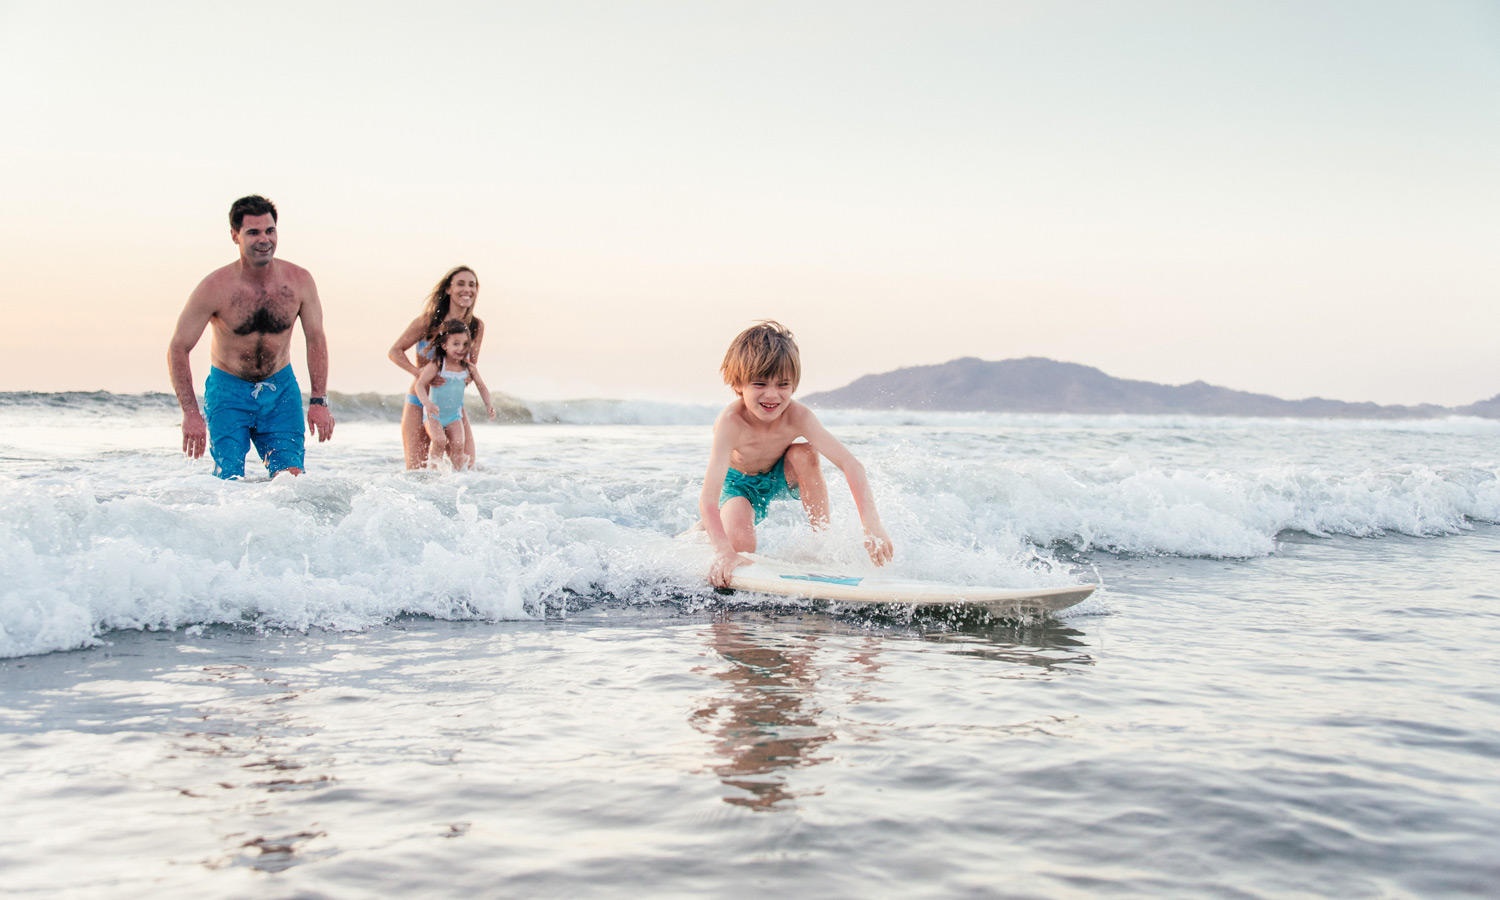 Young boy learning to surf as his family watches in Tamarindo, Costa Rica. Photographed by brand photographer Kristen M. Brown, Samba to the Sea.